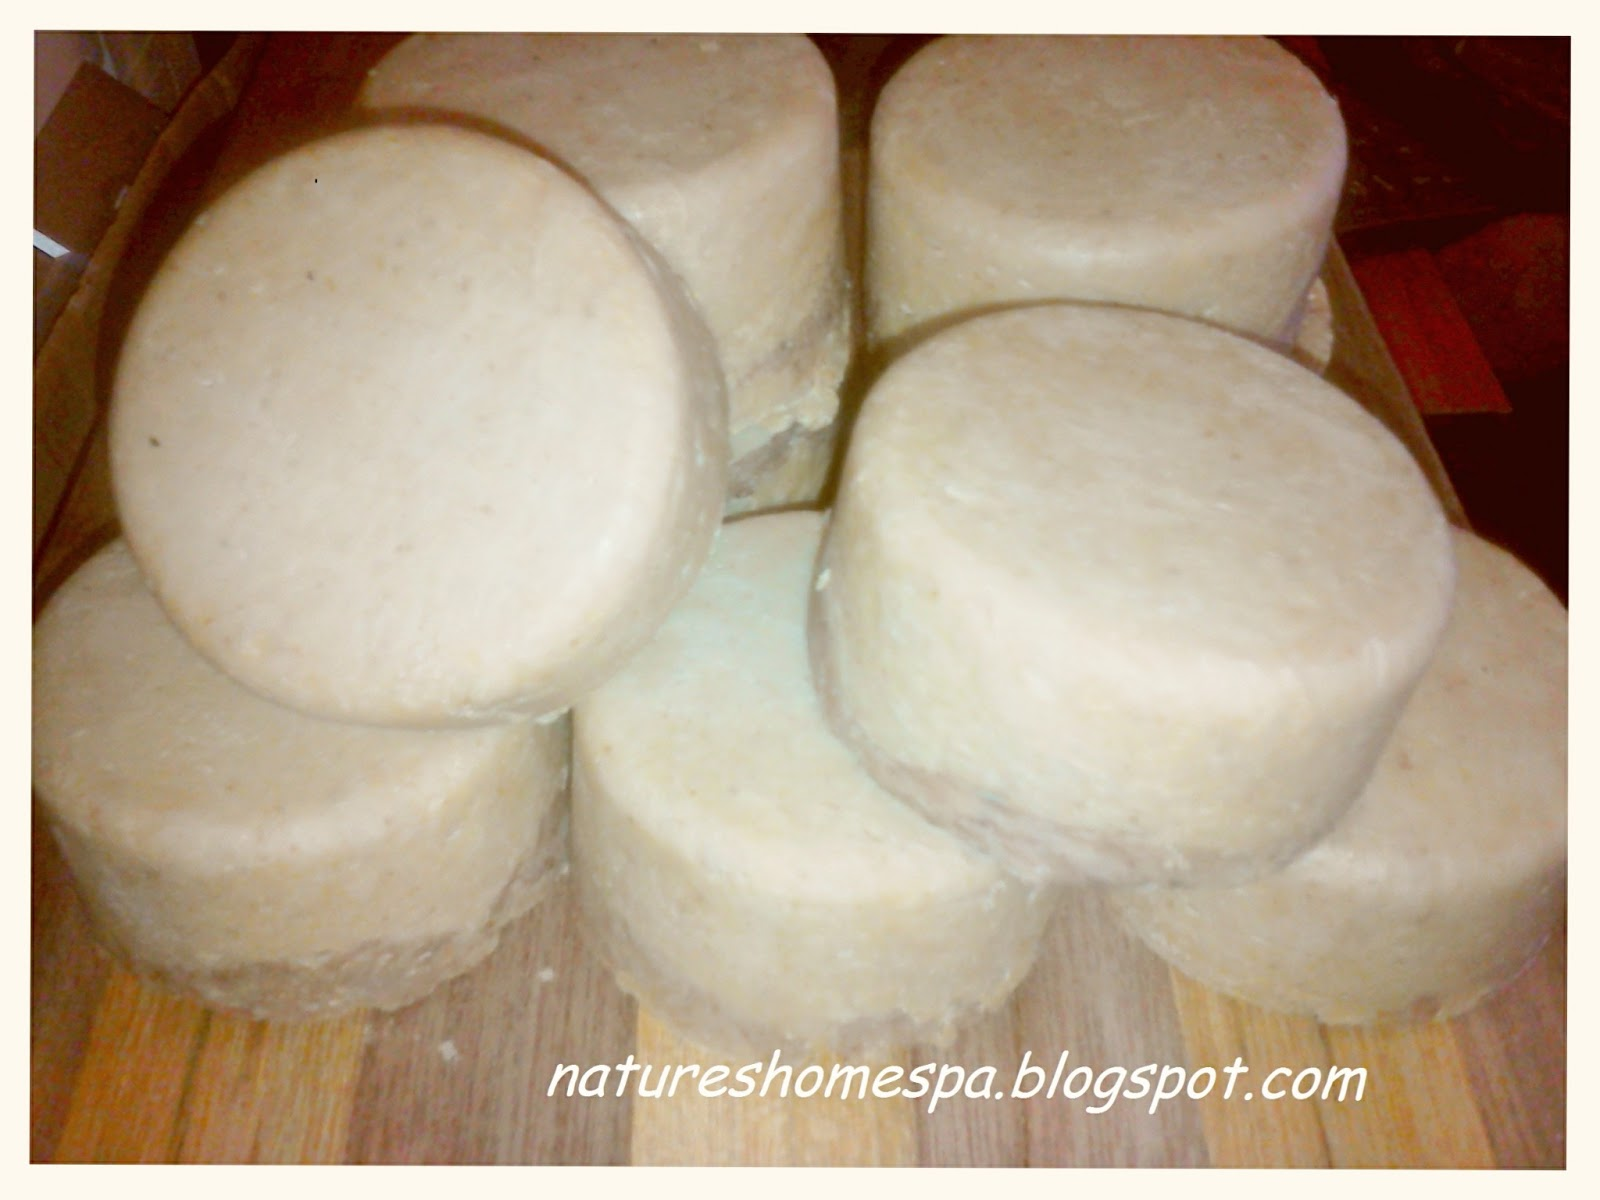 Great super moisturizing soap that is good for all skin types, especially the sensitive skin crowd.